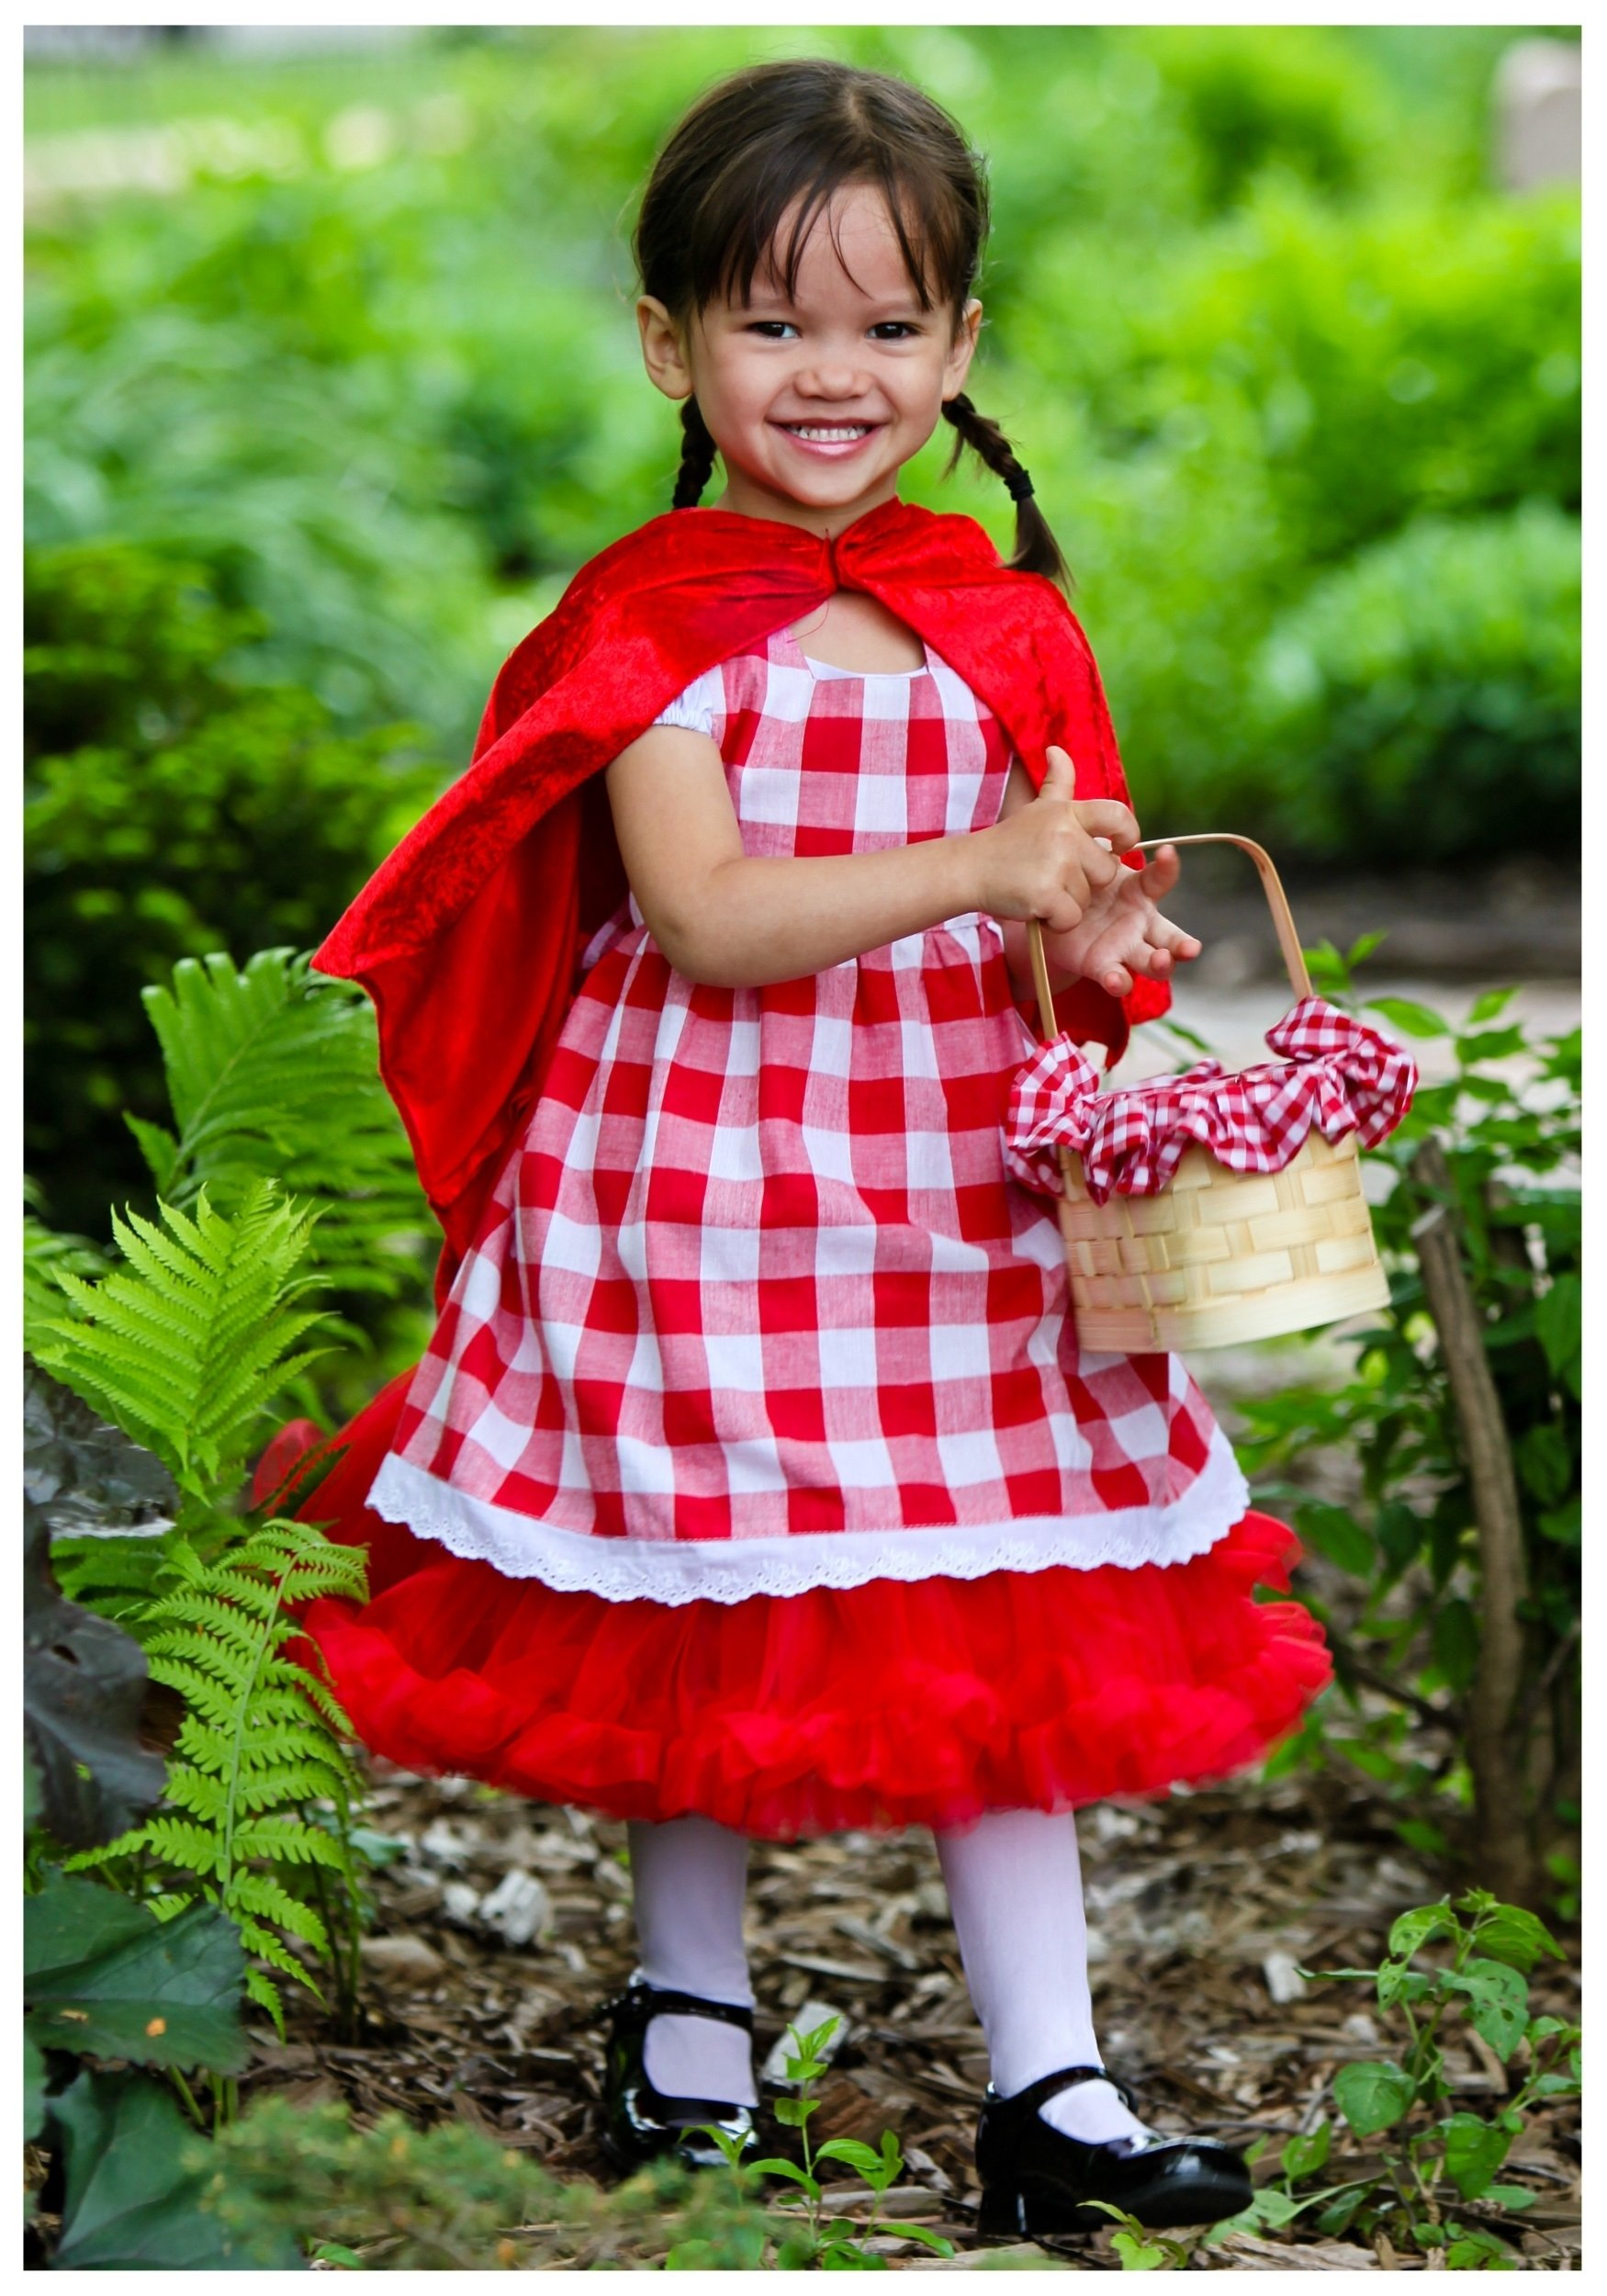 10 Pretty Little Red Riding Hood Costume Ideas toddler red riding hood tutu costume 2021